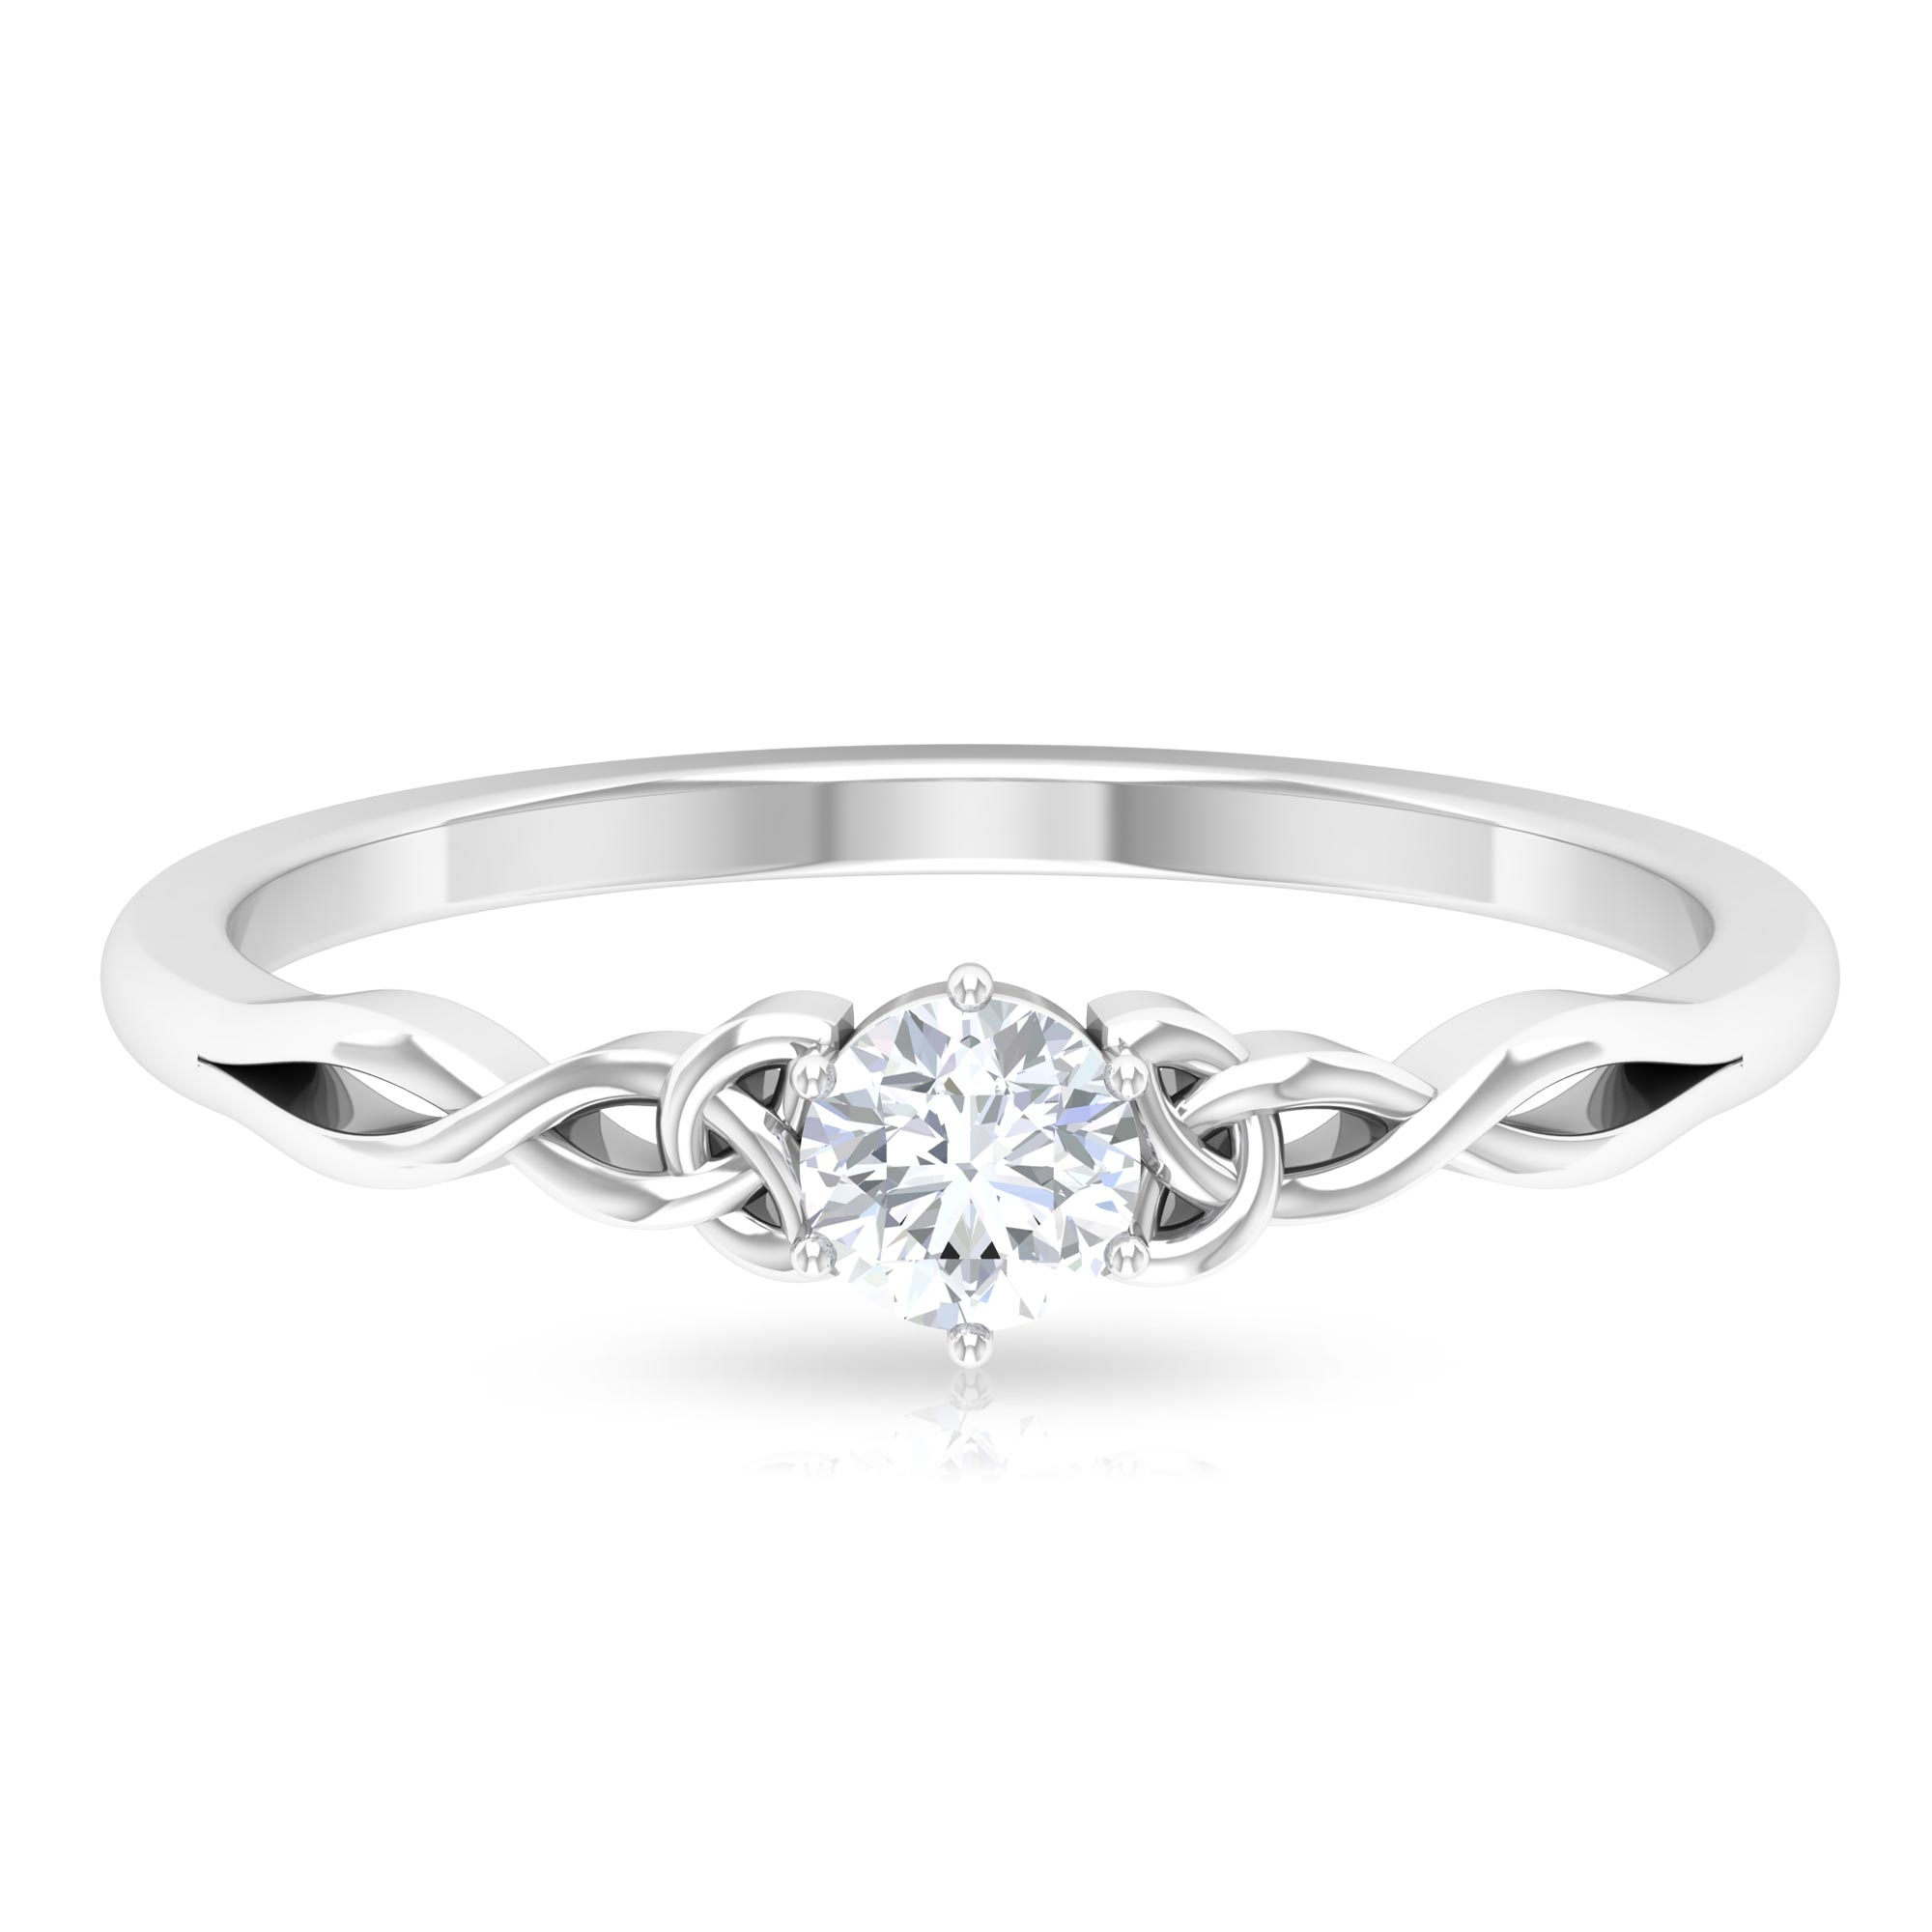 4 MM Round Cut Diamond Solitaire Celtic Ring in 6 Prong Setting